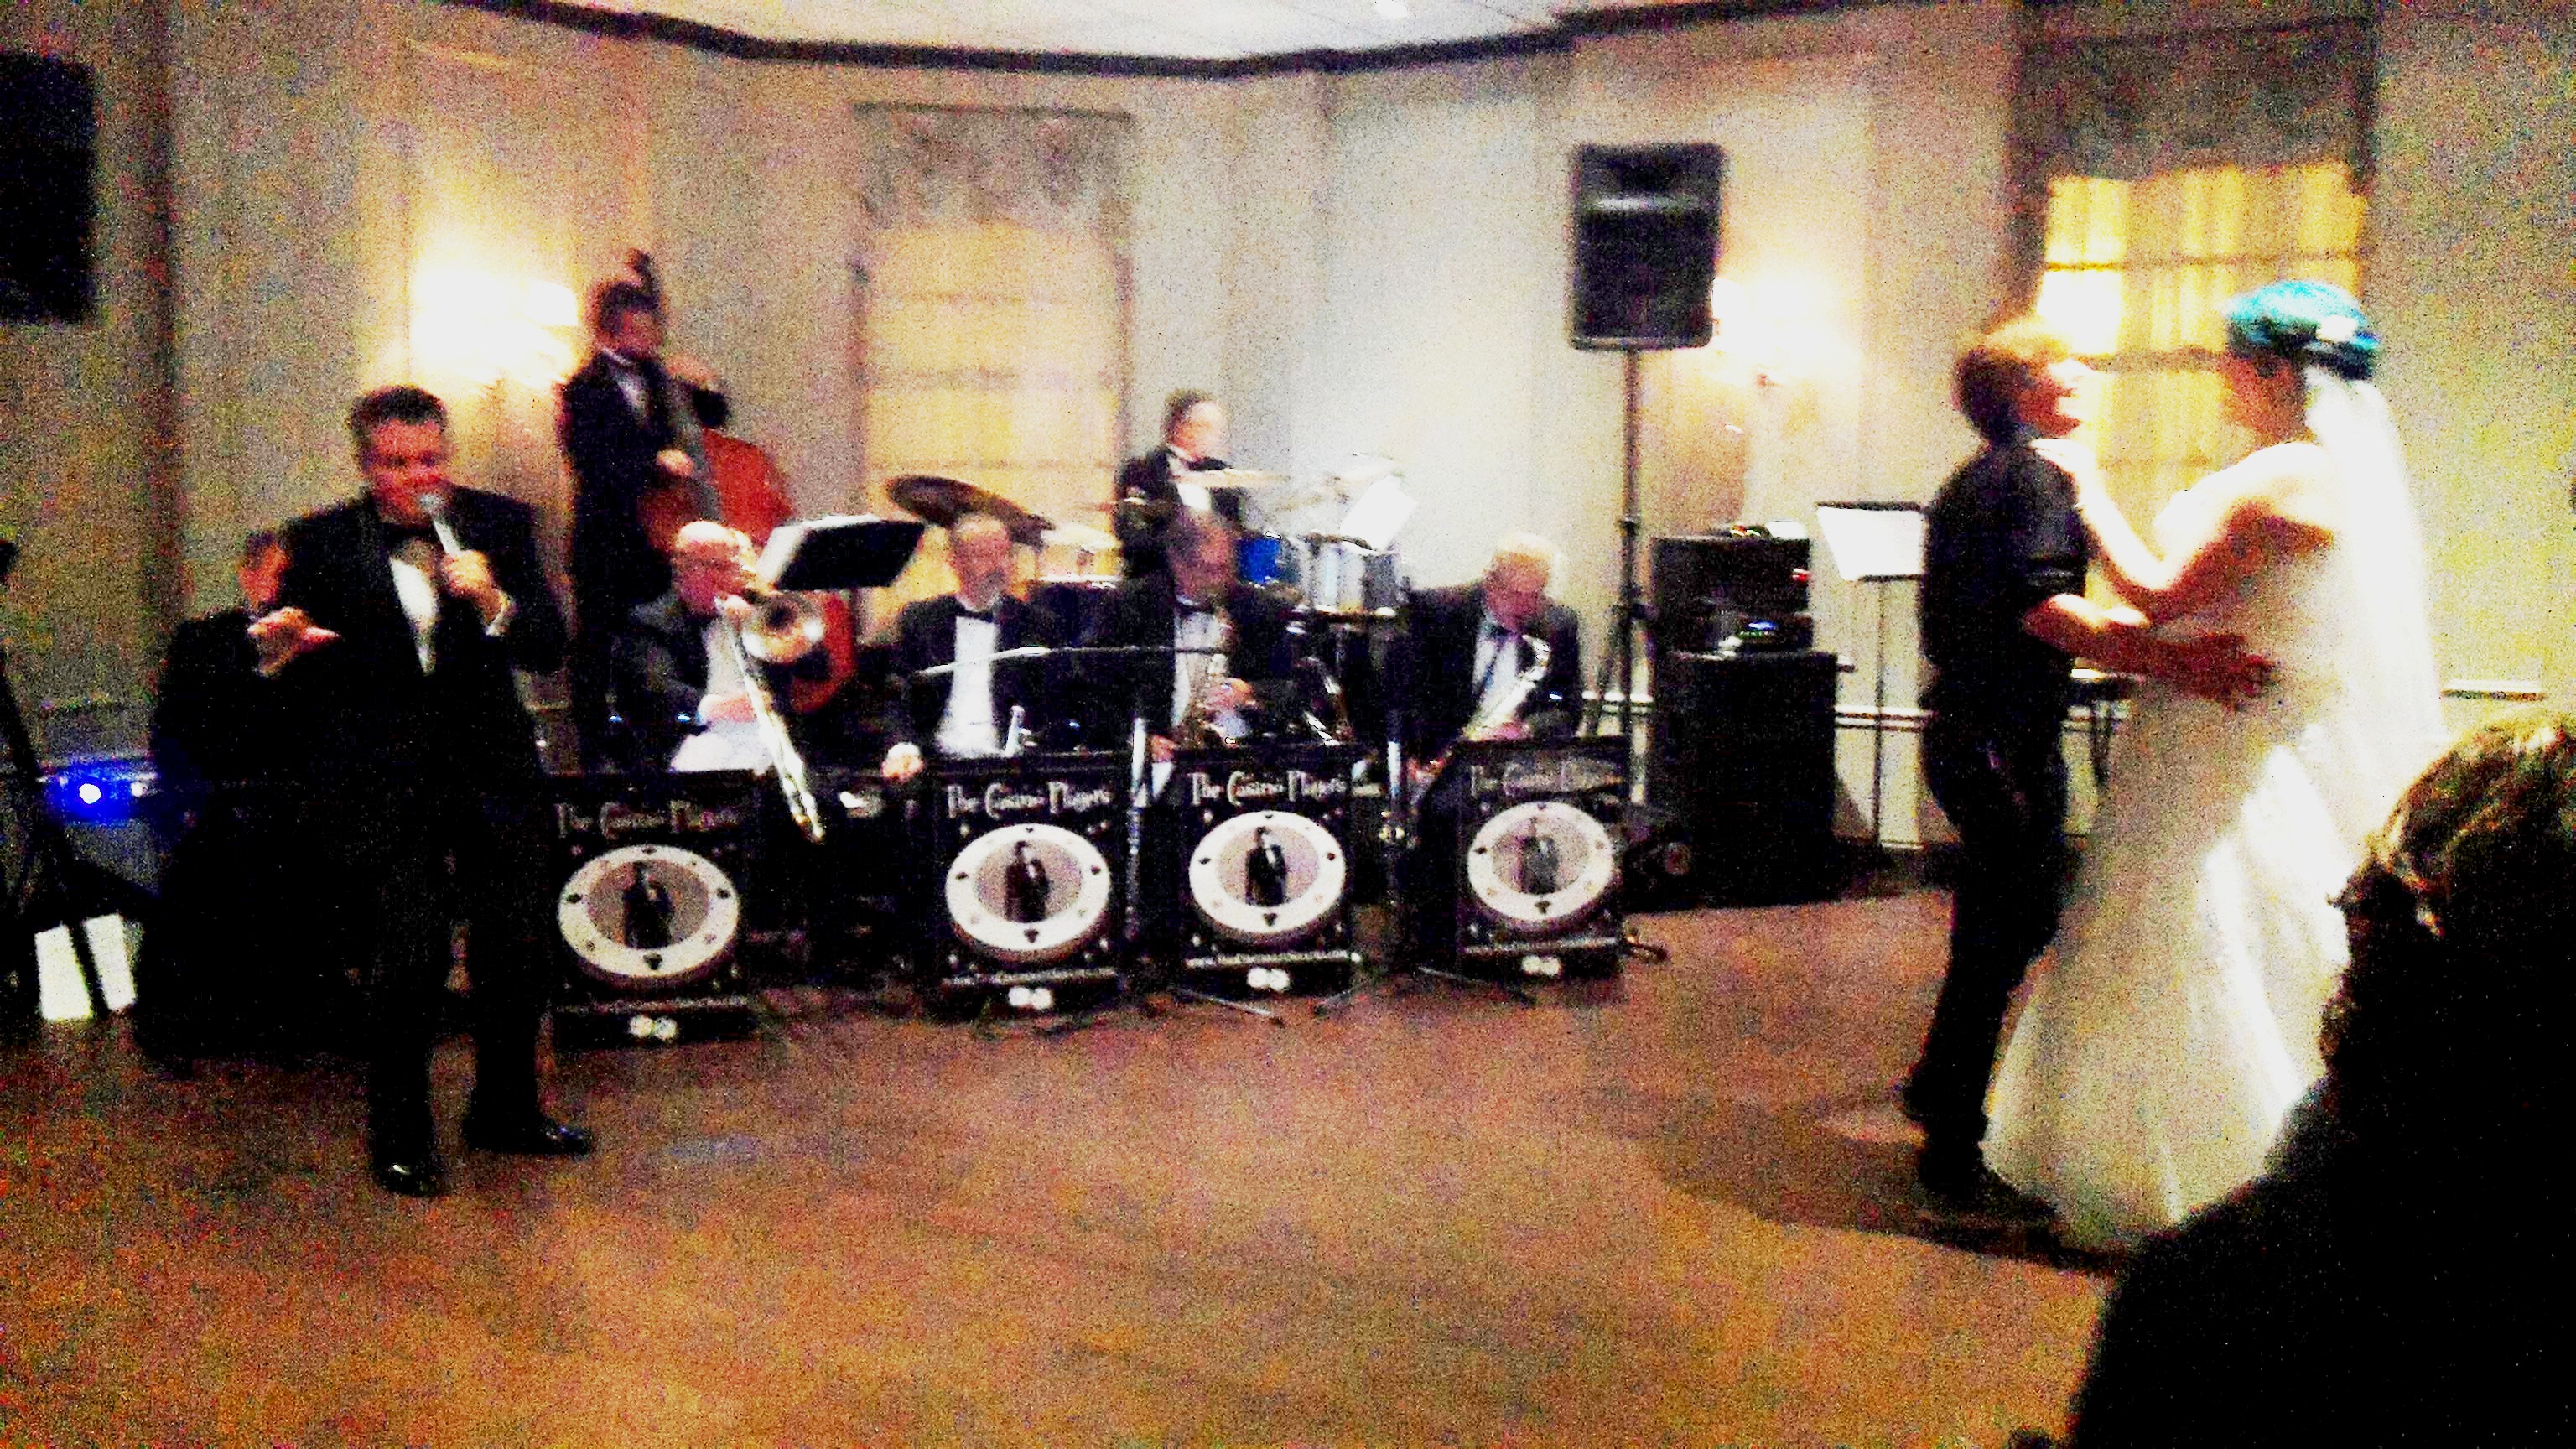 Matt And The Casino Players at Seedle Reception